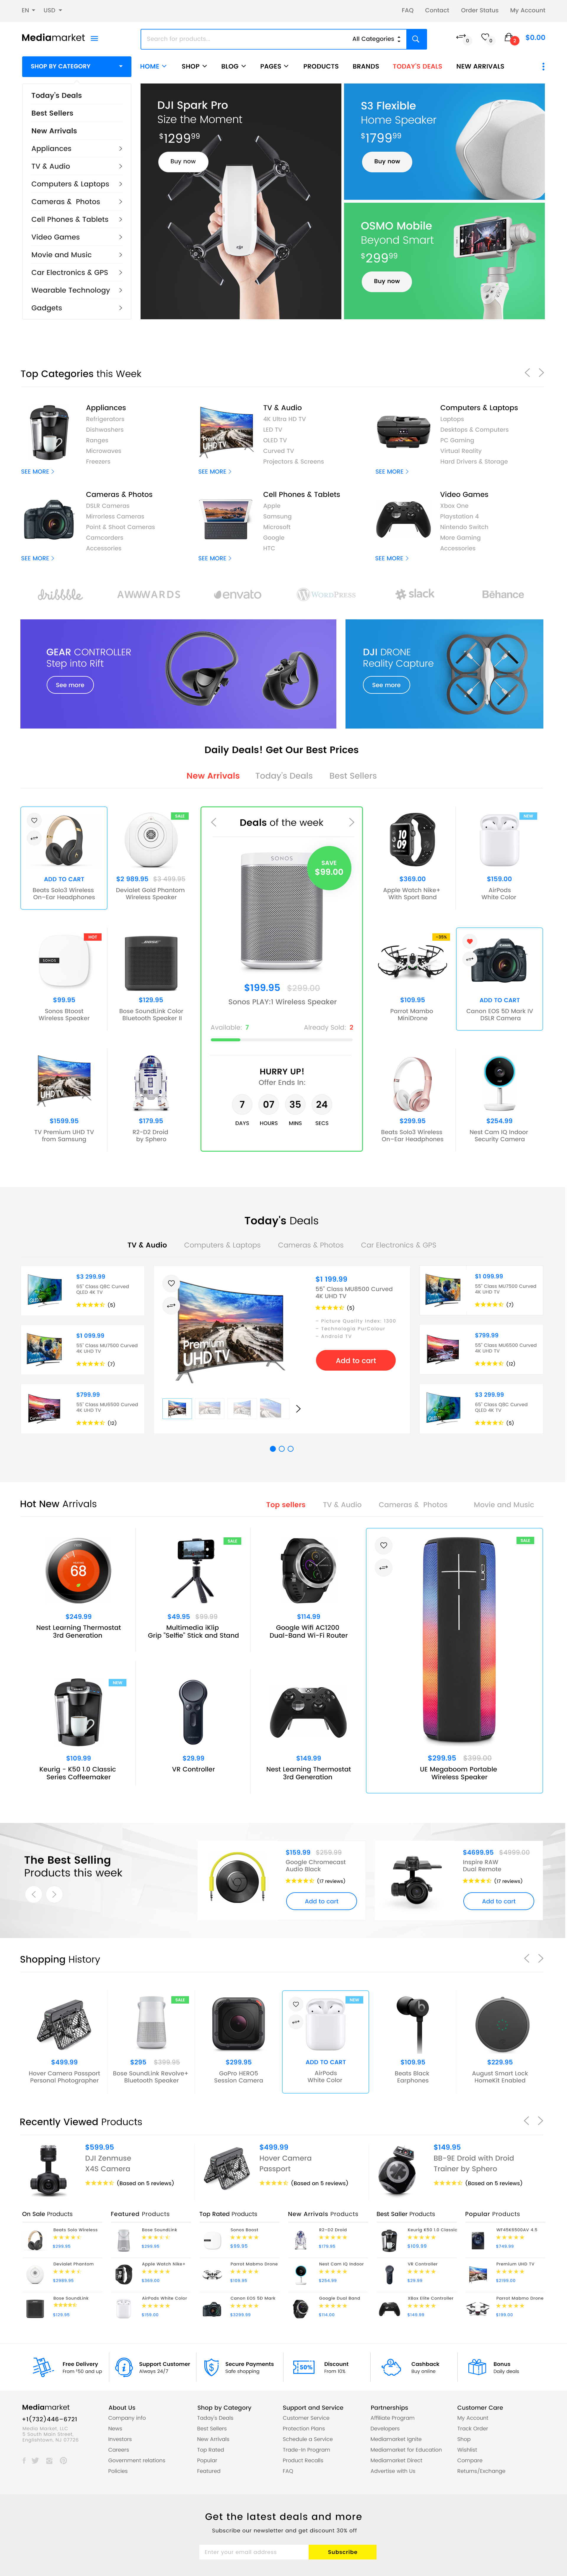 Media Market Electronics And Gadgets Ecommerce Psd Template By Tenigor